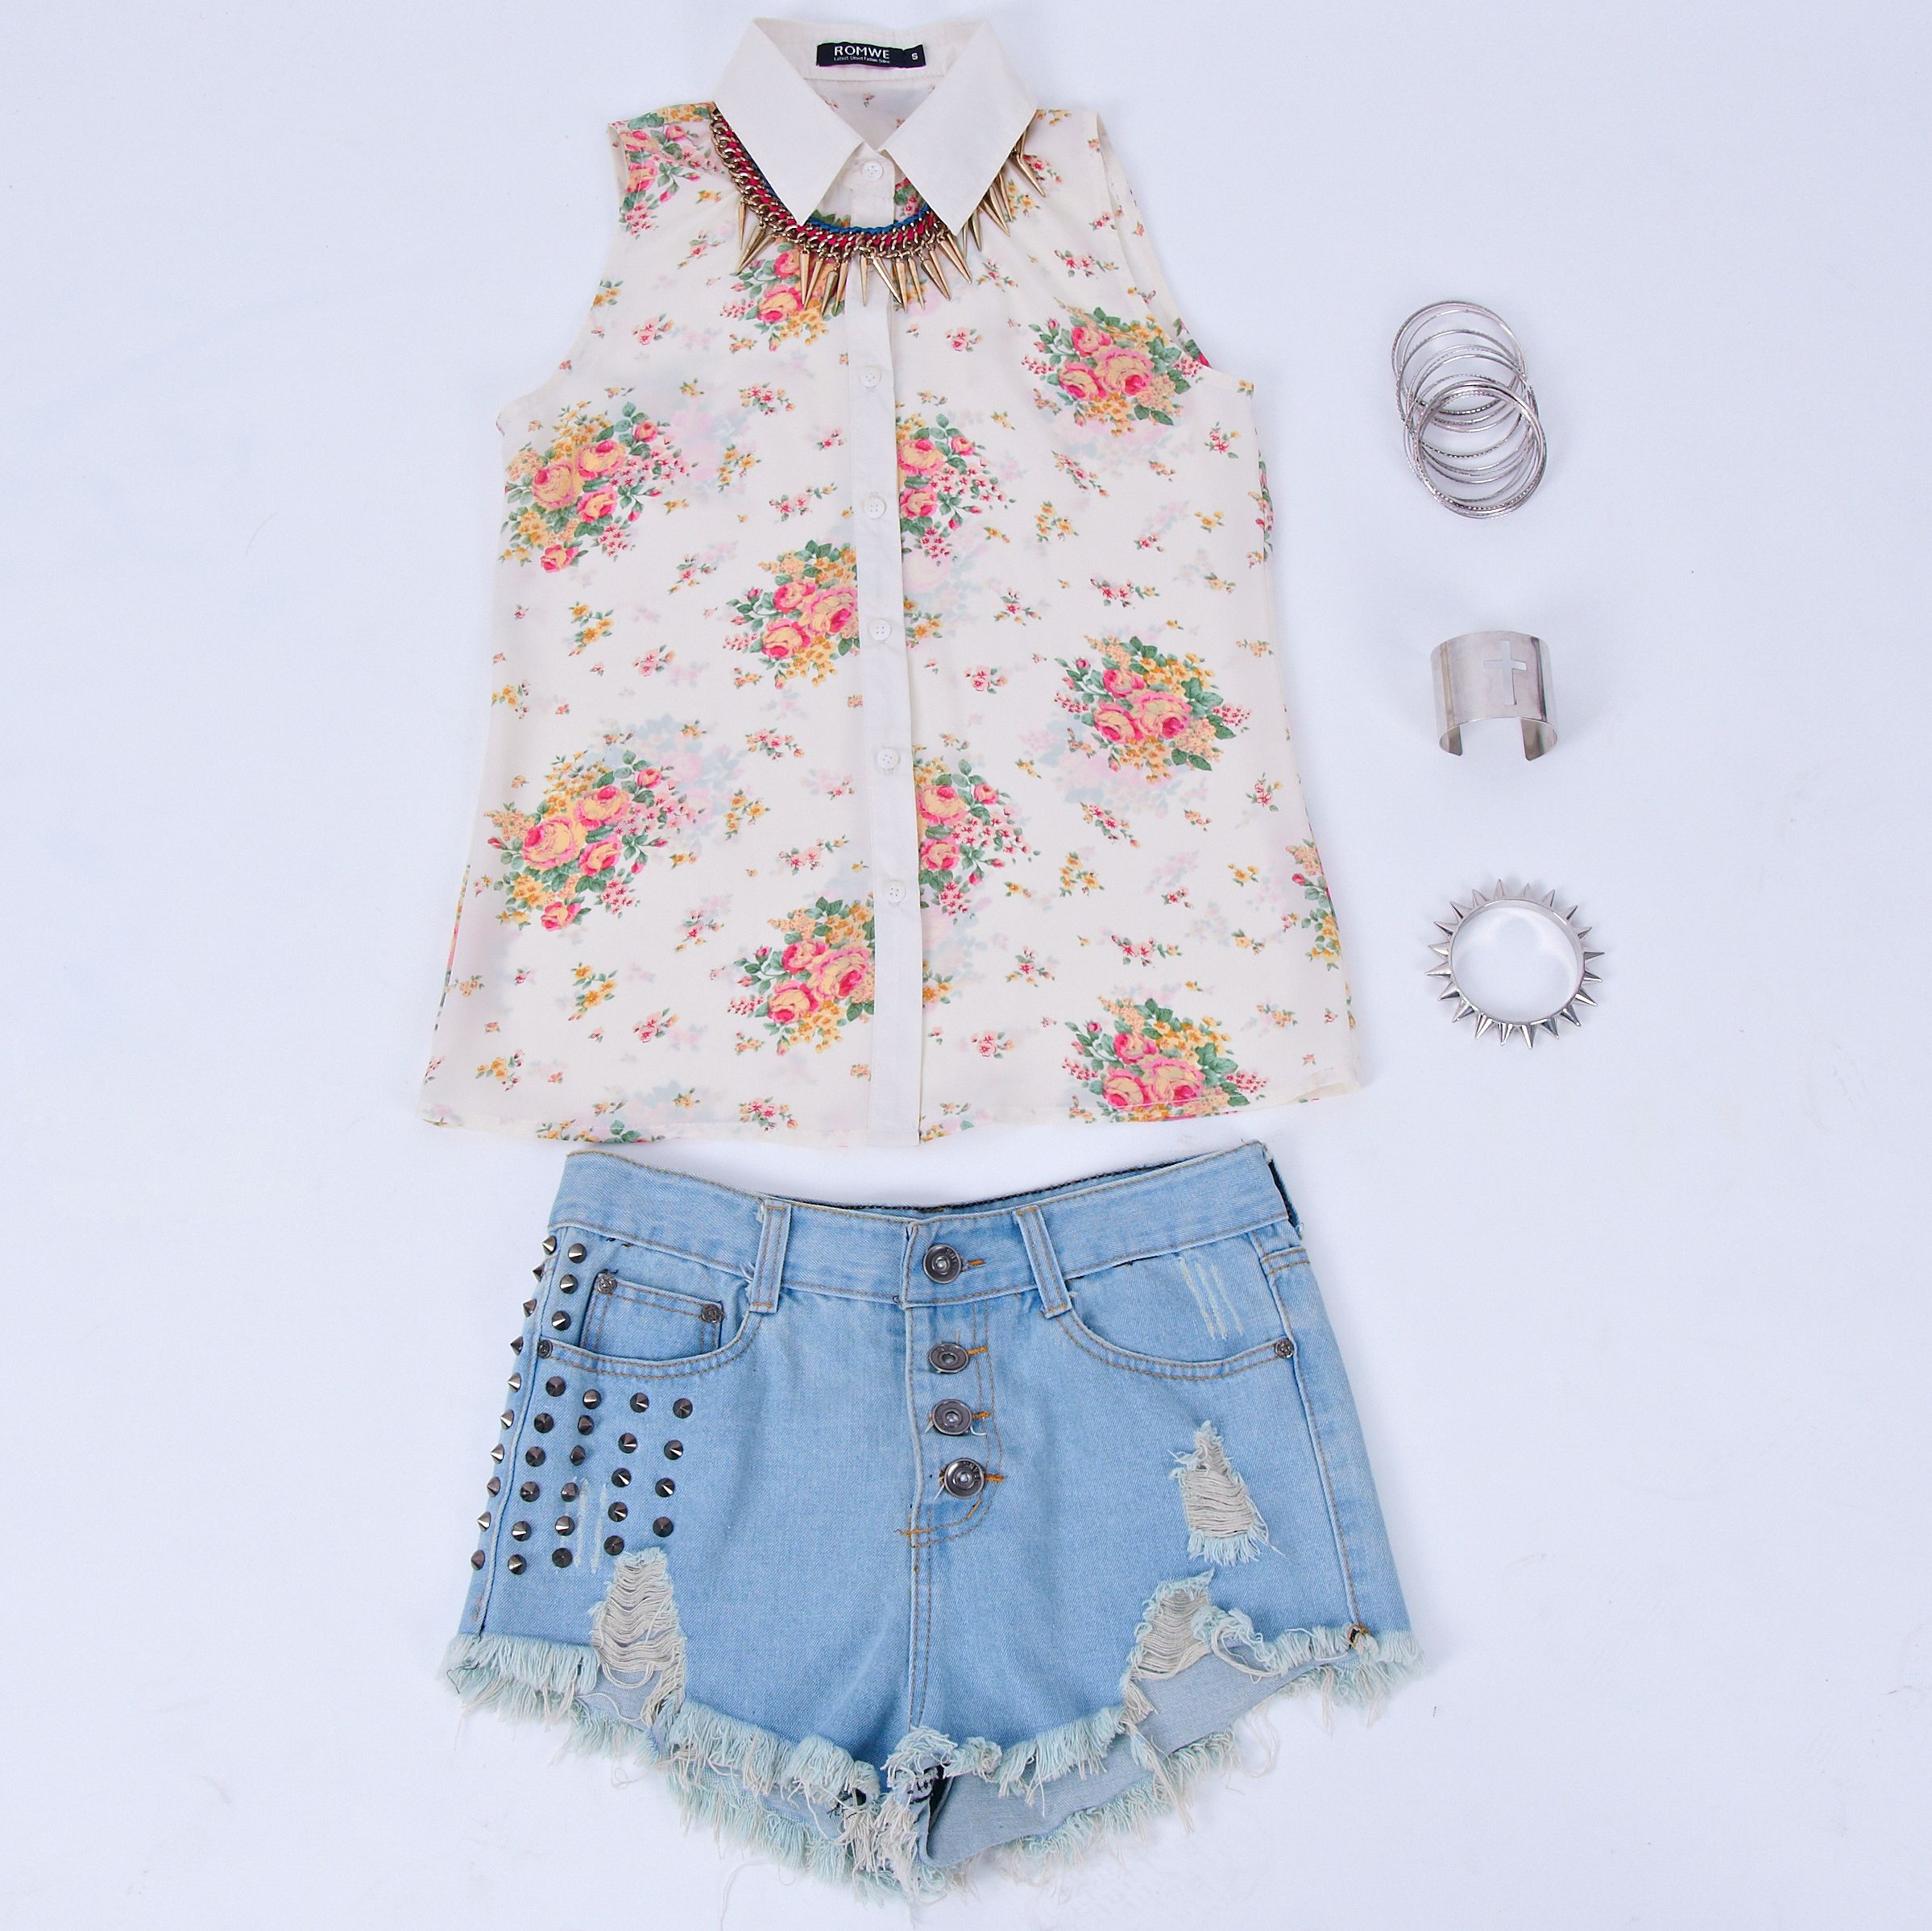 Romwe Summer Clothes